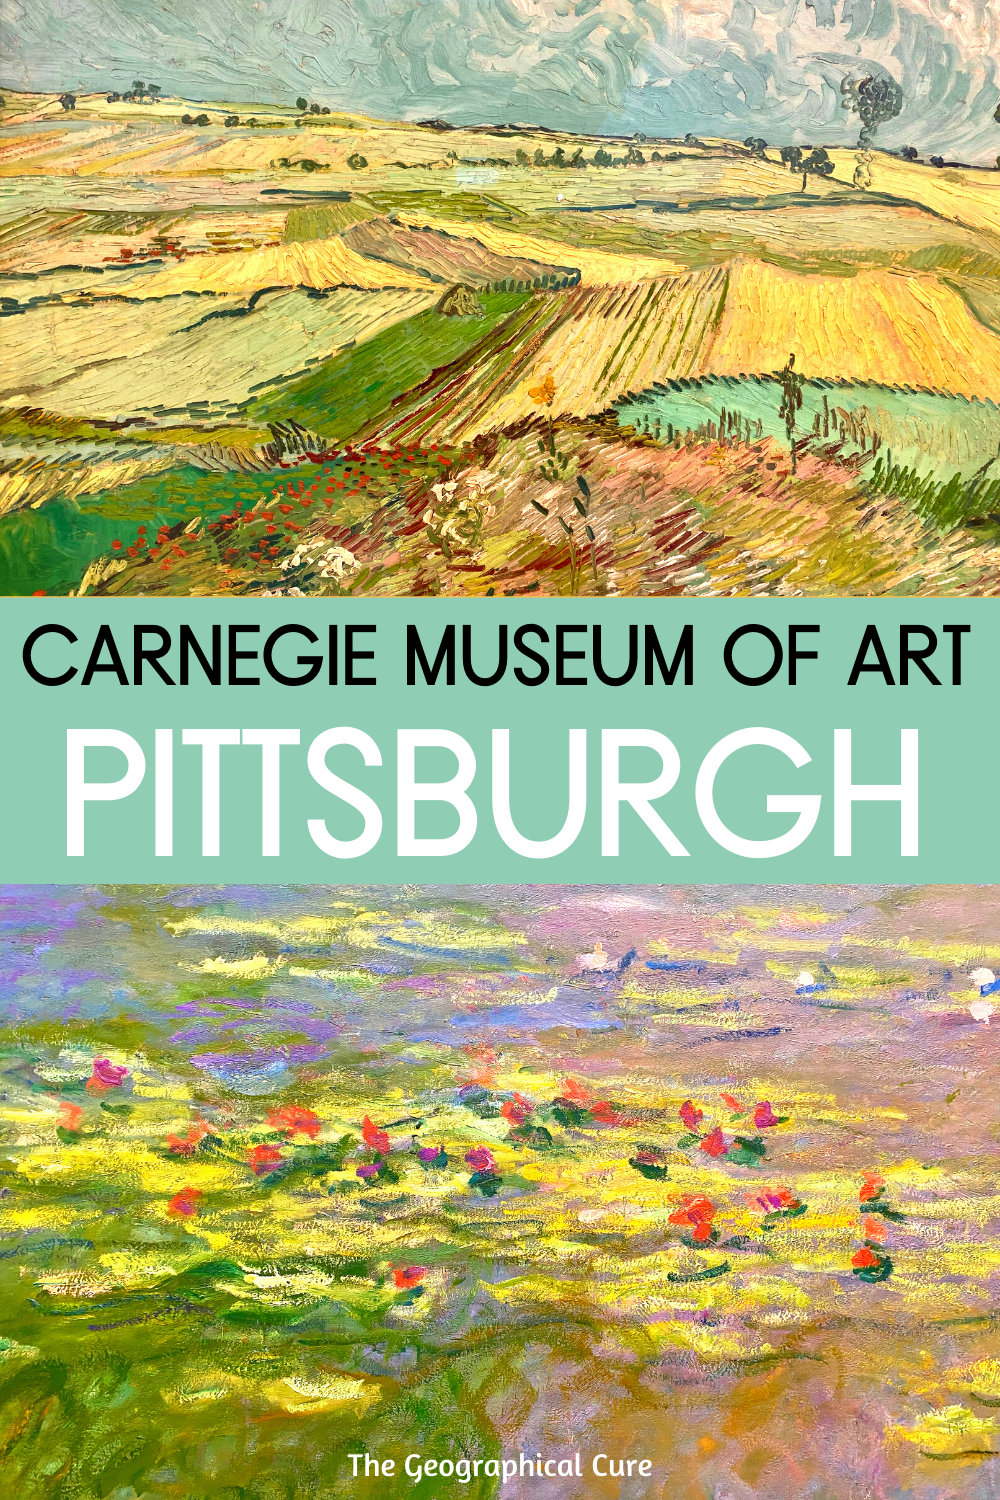 Ultimate Guide To the Carnegie Museum of Art in Pittsburgh Pennsylvania